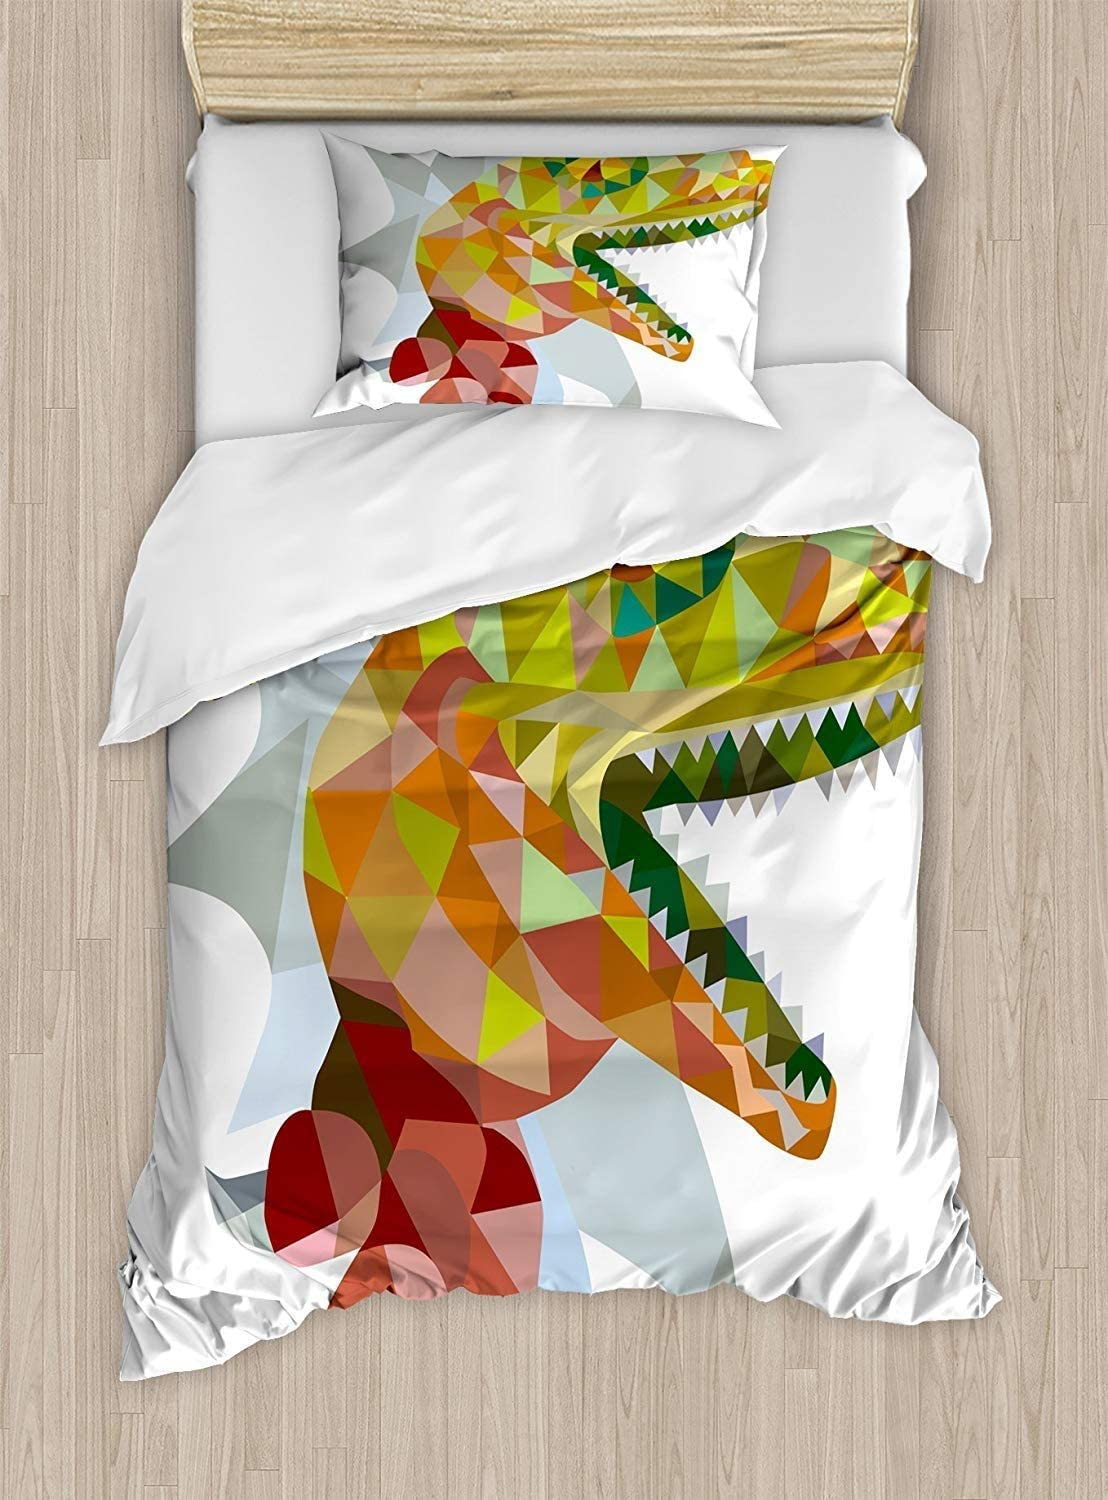 SINOVAL Reptile Duvet Cover Set Twin Size, Colorful Mosaic Wild Trex Illustration Opens Mouth Jurassic Pixel Dinosaur Mascot,Fashion 2 Piece Bedding Set with 1 Pillow Sham, Colorcolor